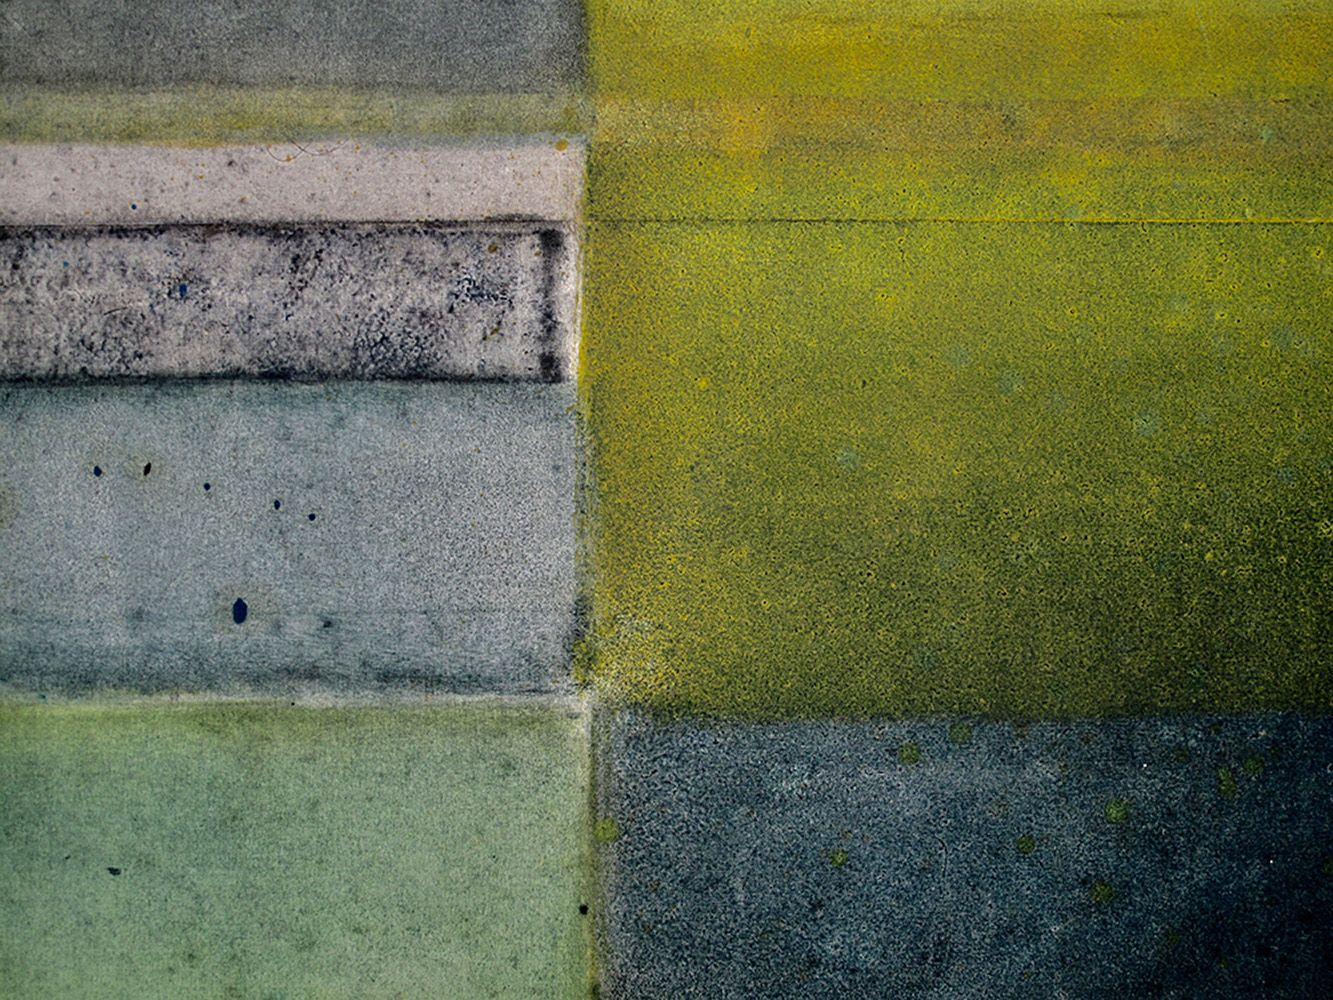 Untitled LXII, Abstract (large size),Elvire Ferle,Contemporary painting, detail 1